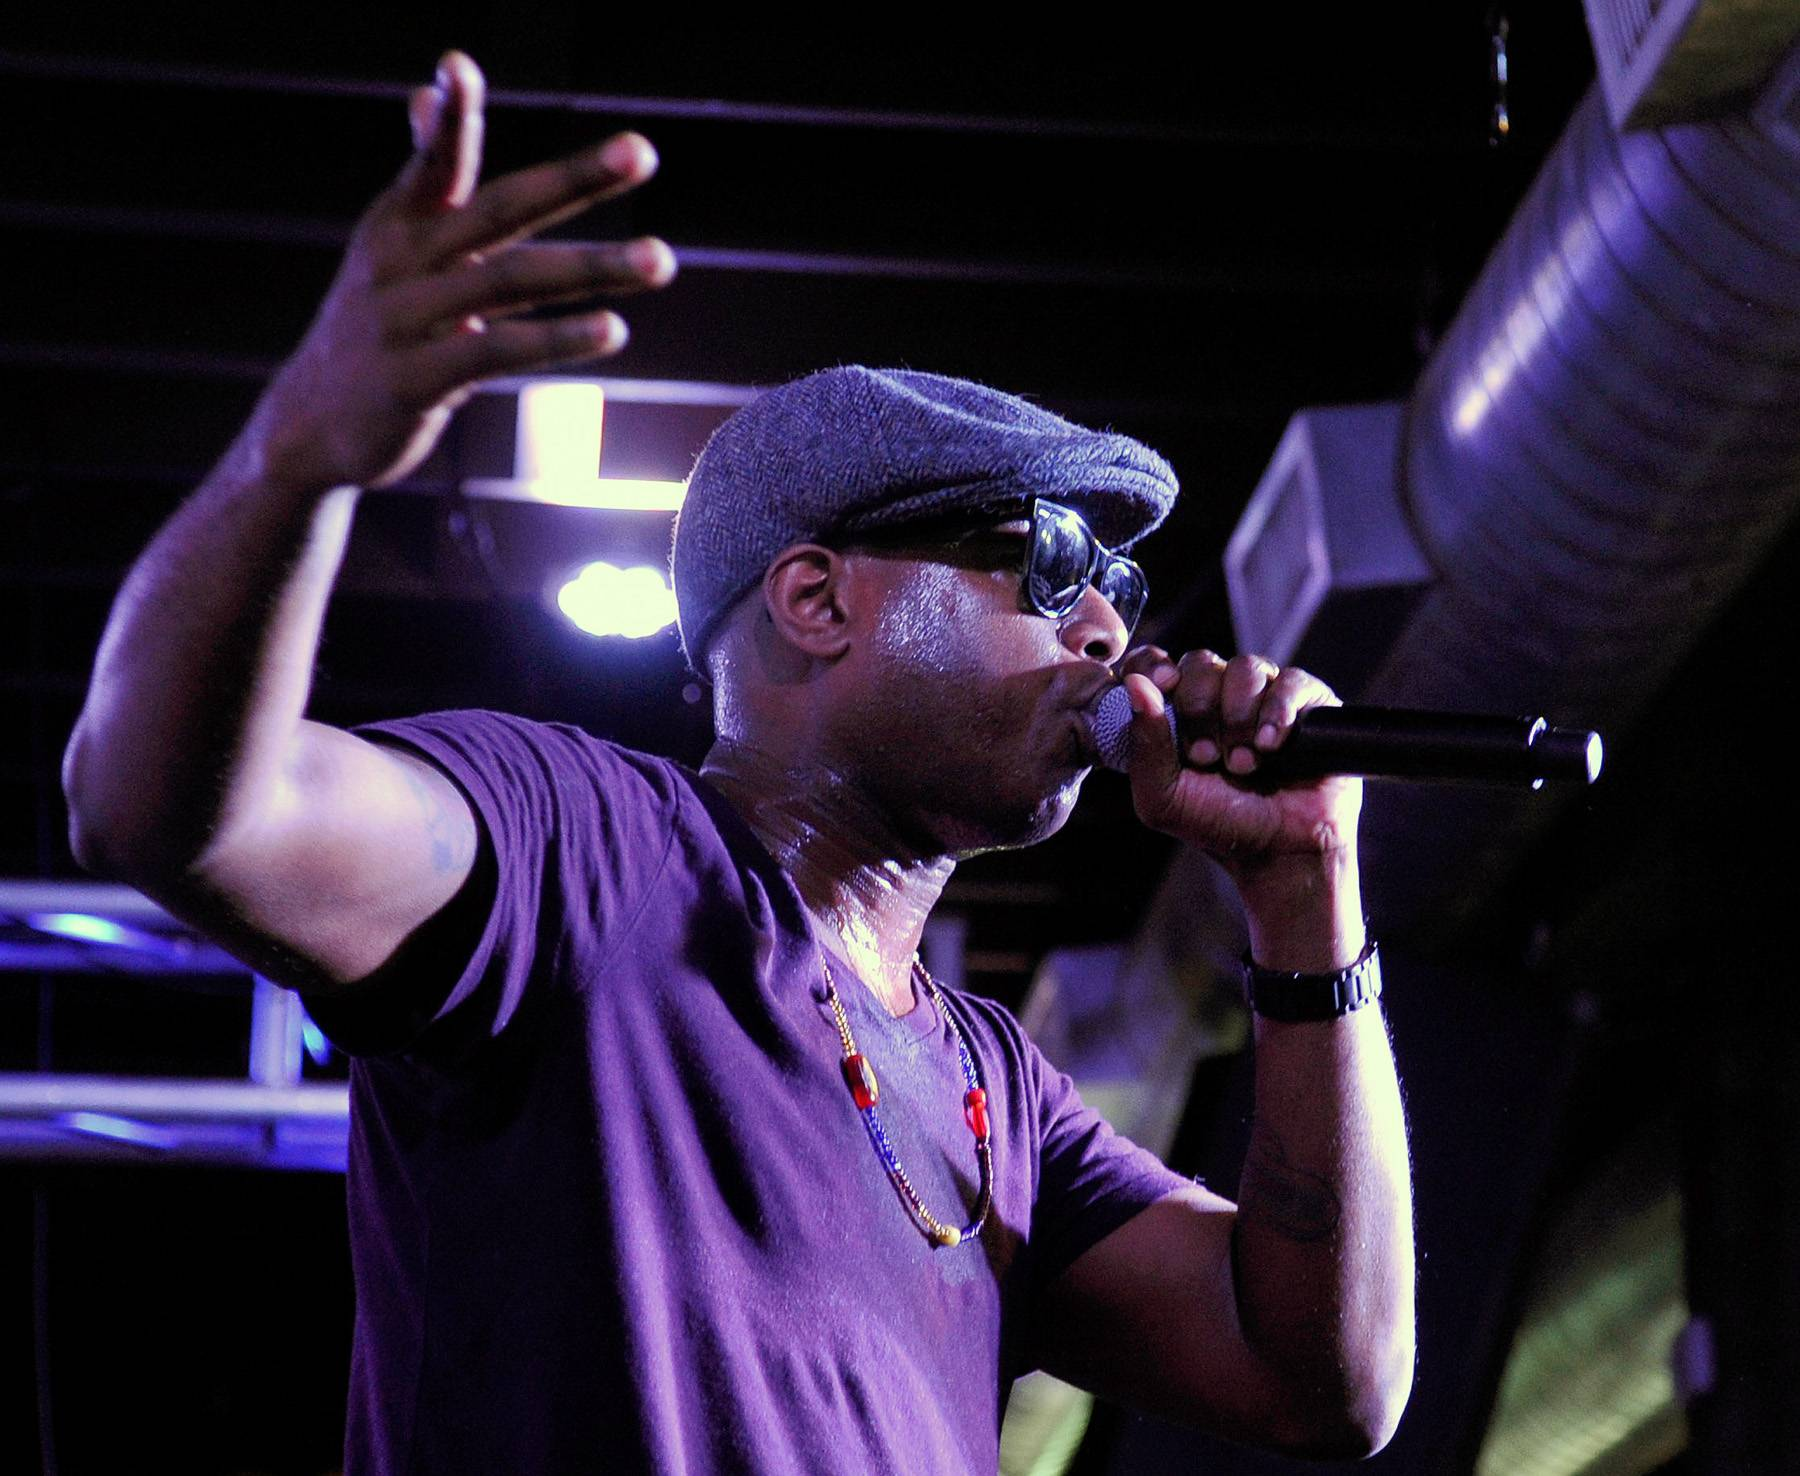 Centric Certified: Talib Kweli - The Brooklyn native?s music has entertained and educated listeners for years, making him a favorite among the hip-hop world (including his peers).  (Photo: John Sciulli/Getty Images for Samsung)